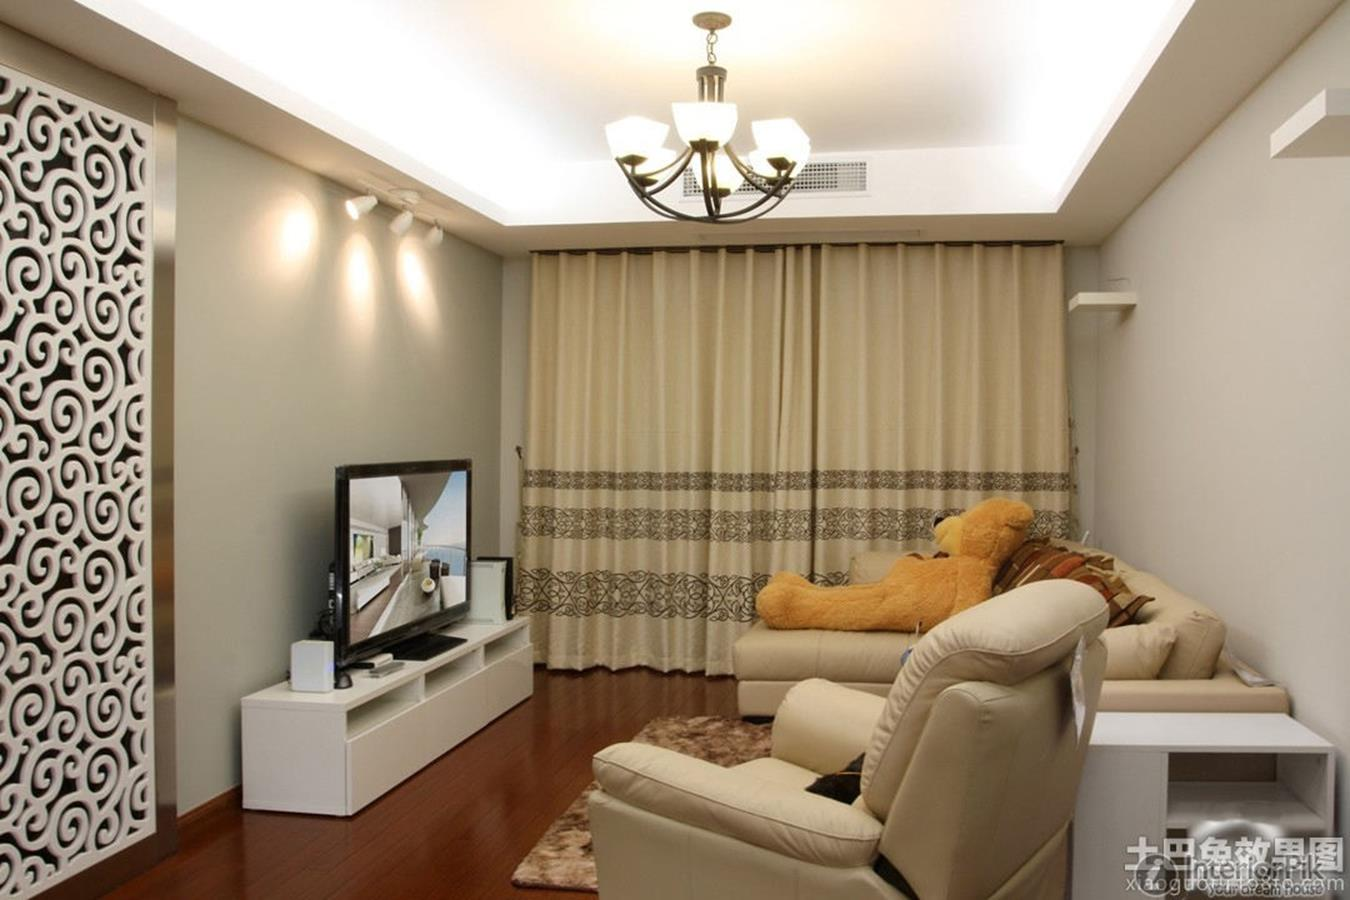 Living Room Ideas For Small Houses 23